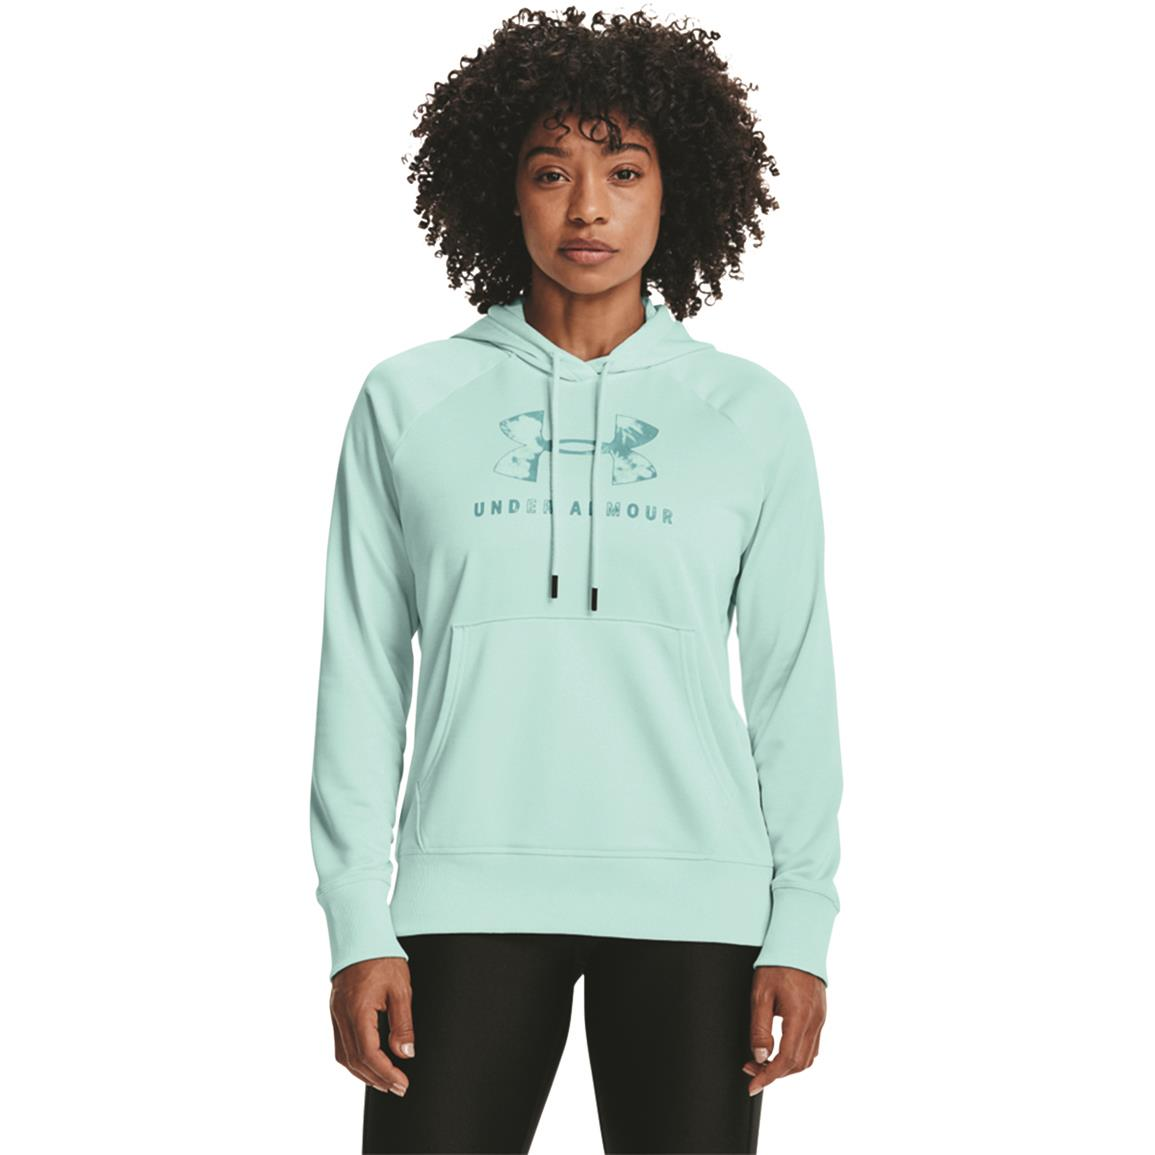 Under Armour Women's Shoreline Terry Hoodie, Breeze